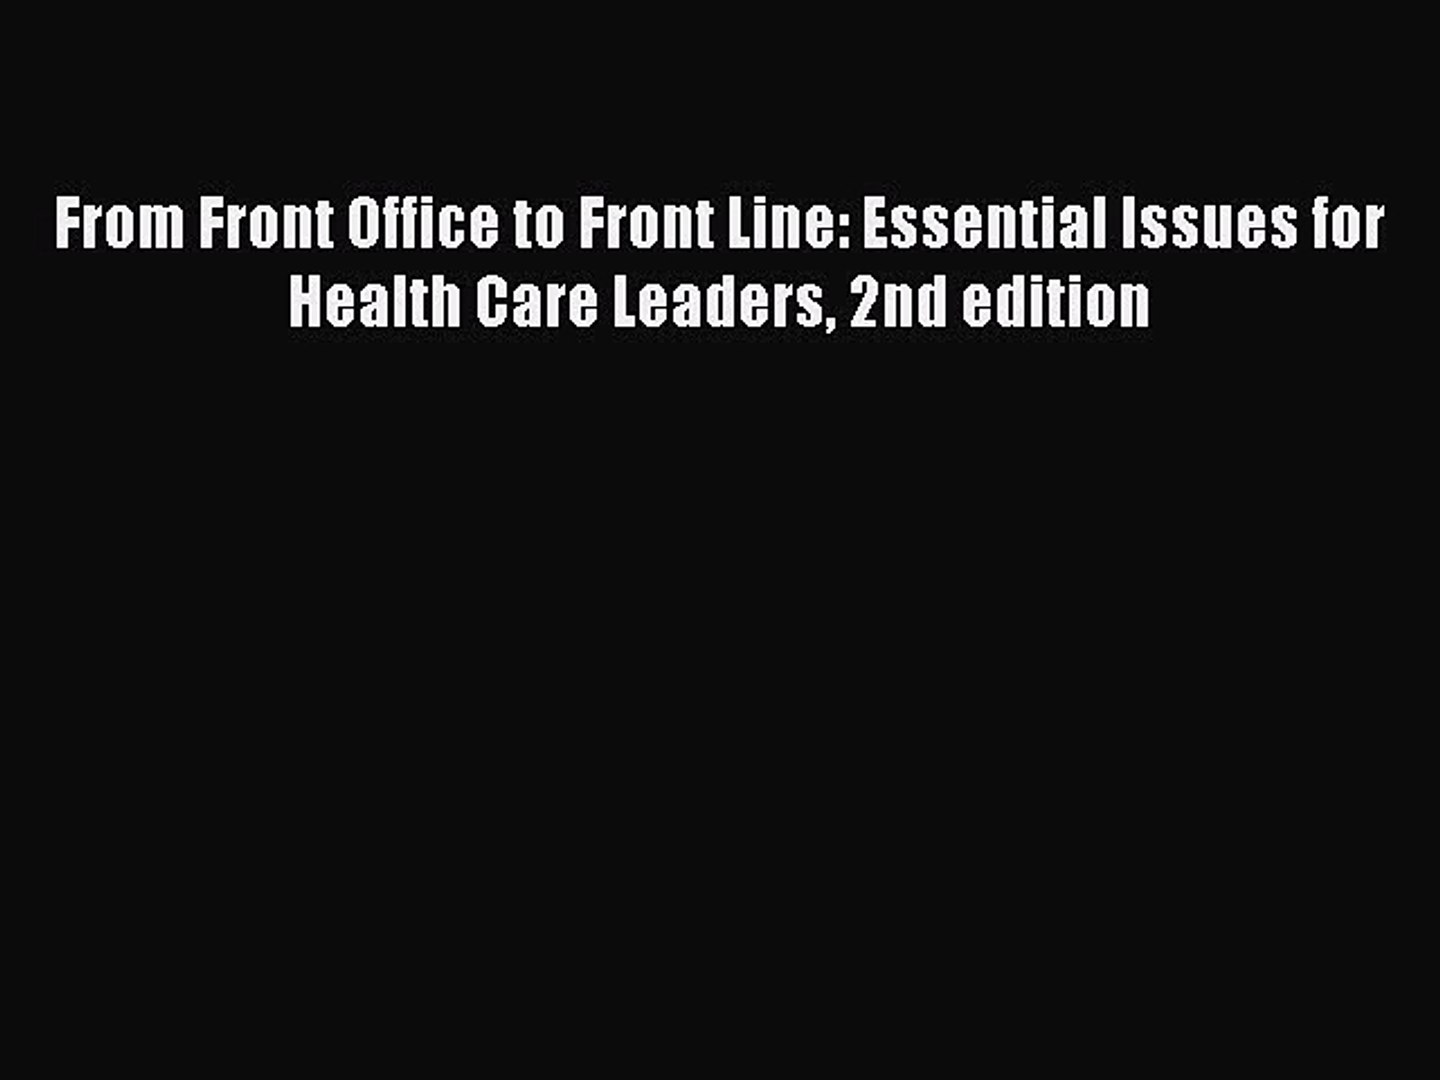 [PDF] From Front Office to Front Line: Essential Issues for Health Care Leaders 2nd edition